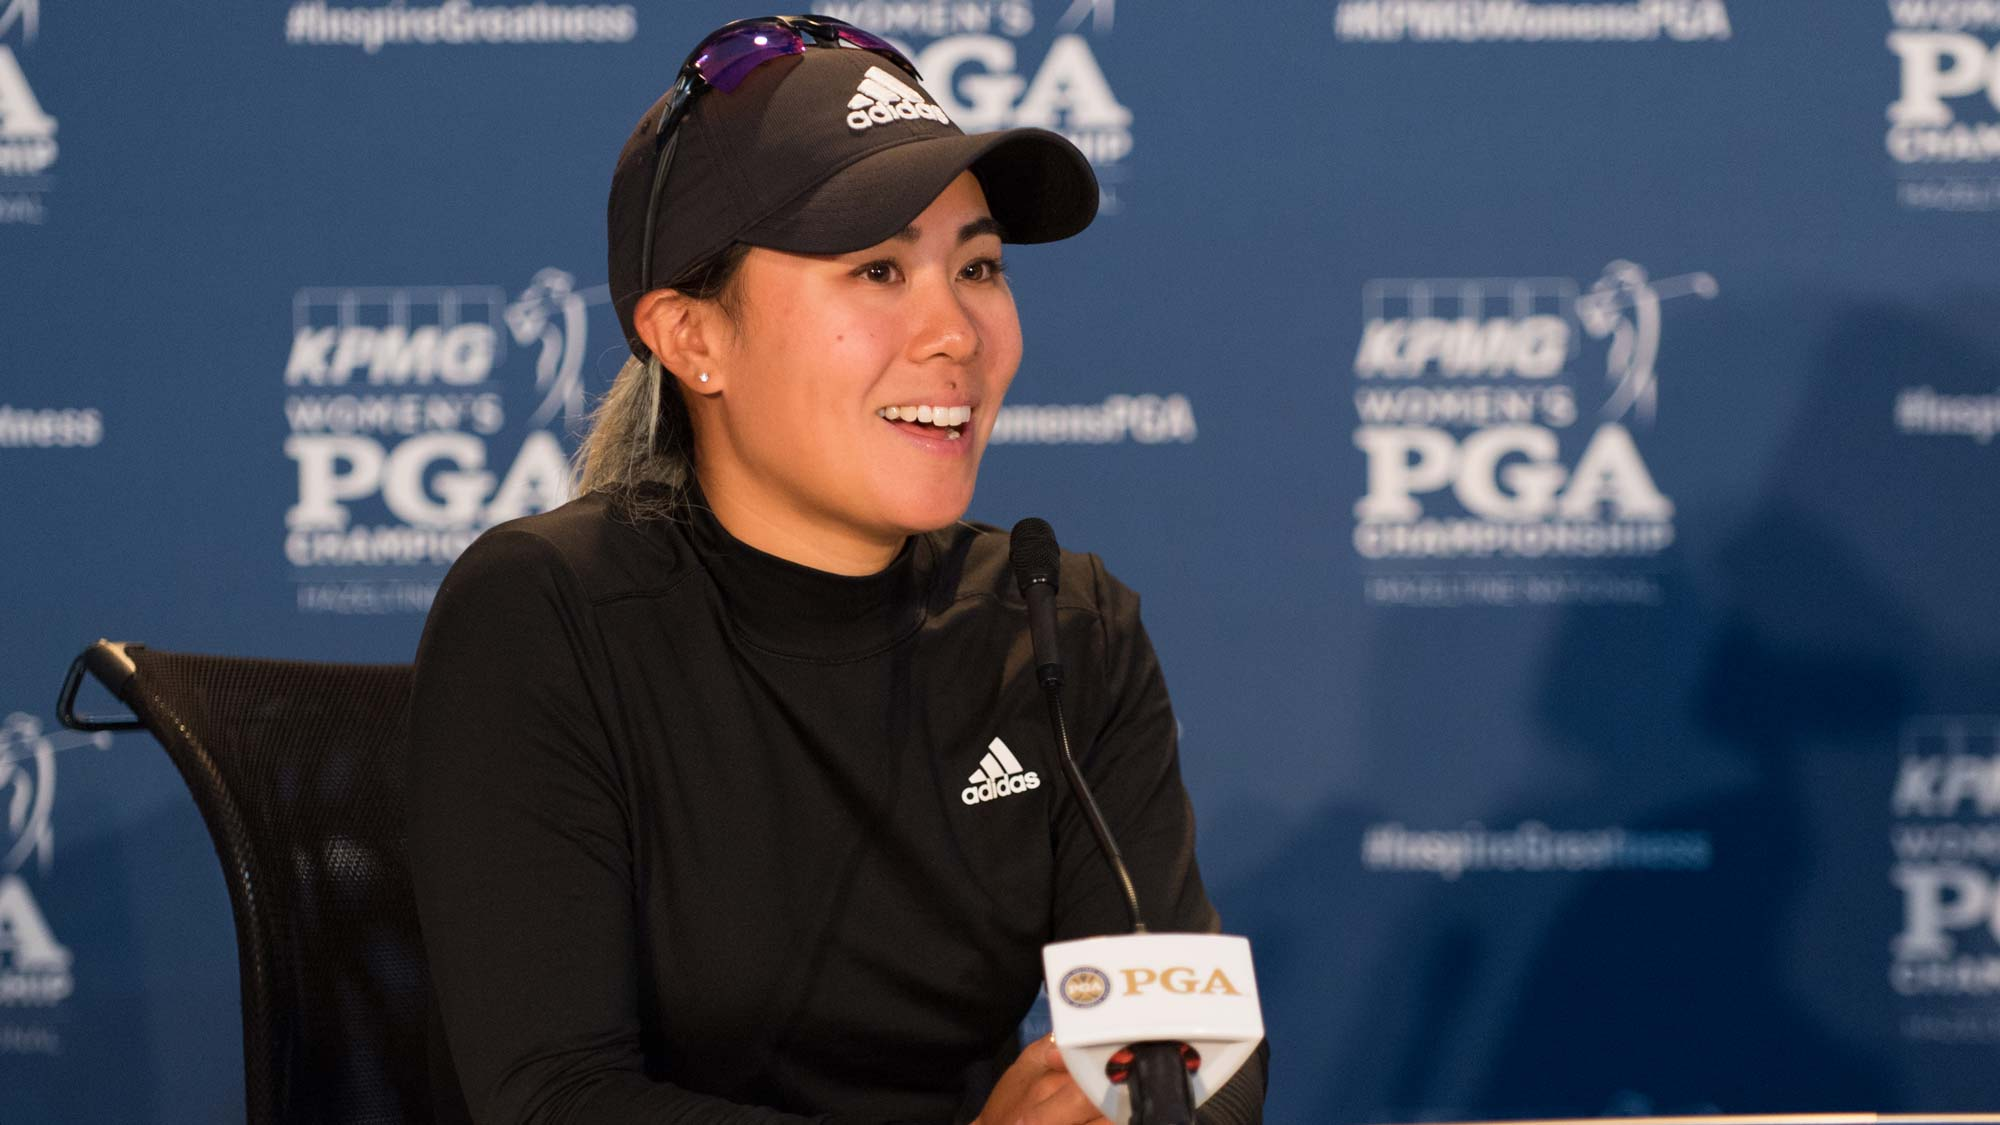 Danielle Kang talks with the media ahead of the 2019 KPMG Women's PGA Championship